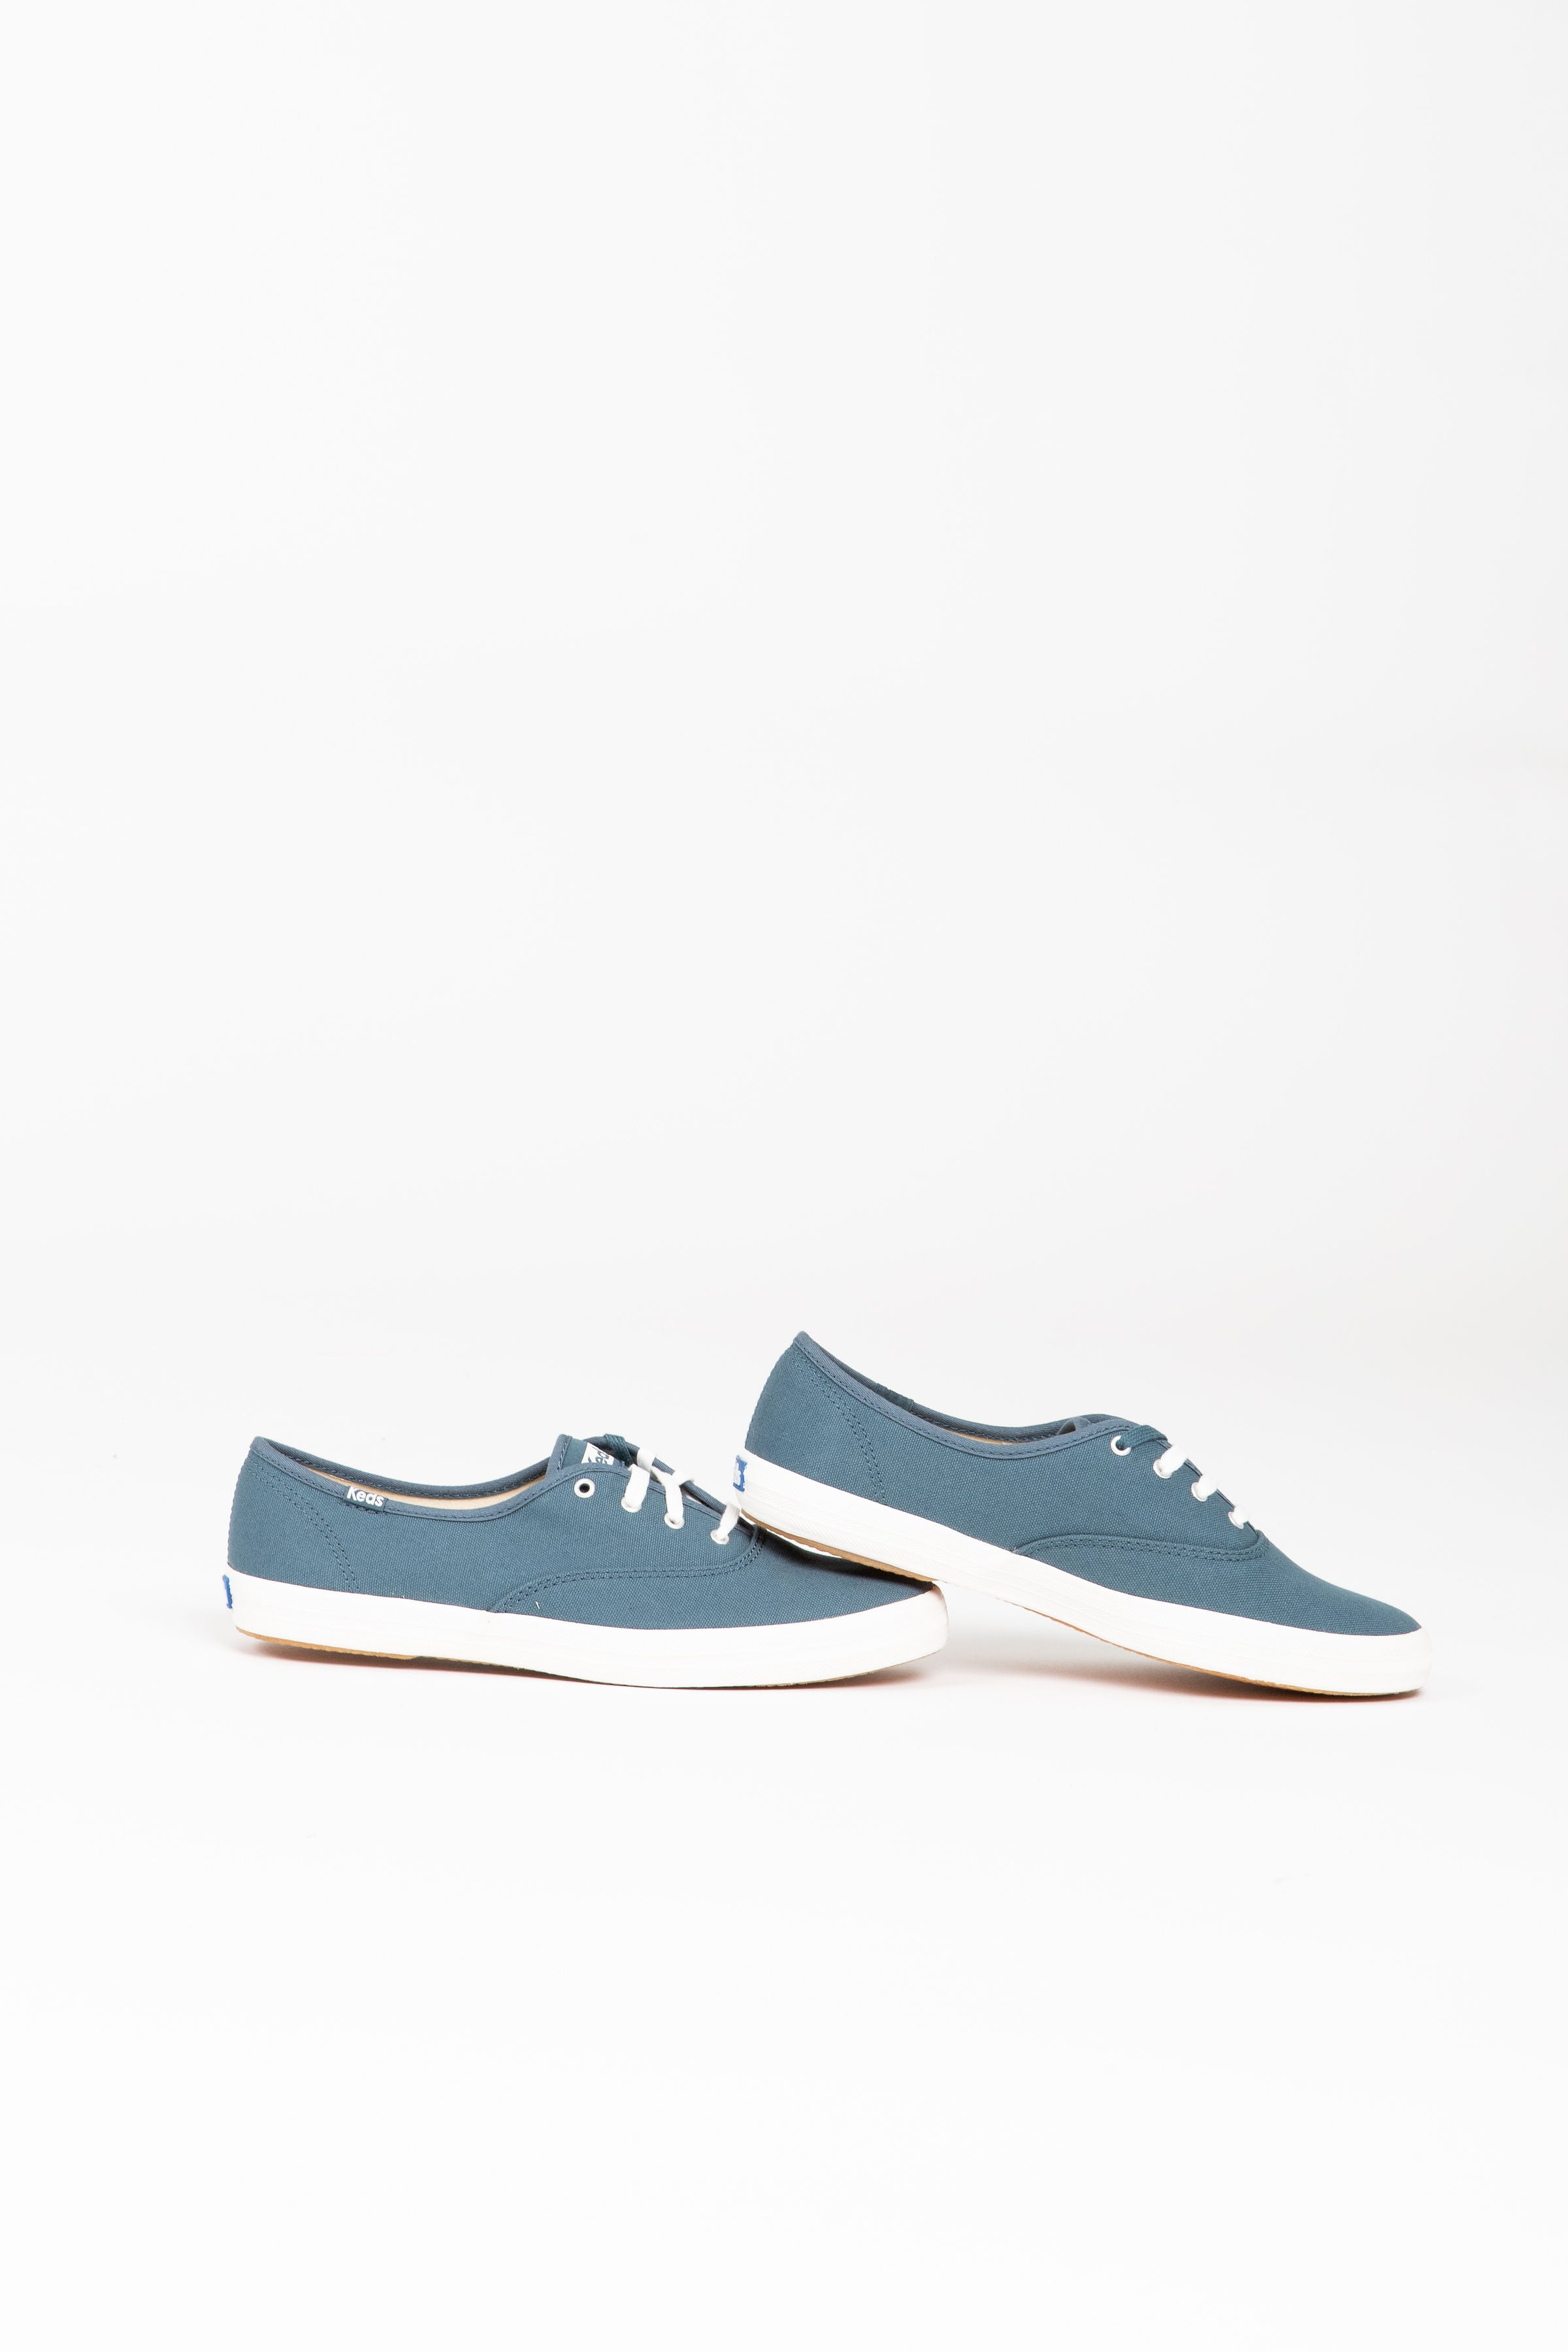 Keds: Women's Champion Spring Solids Sneaker in Dark Teal